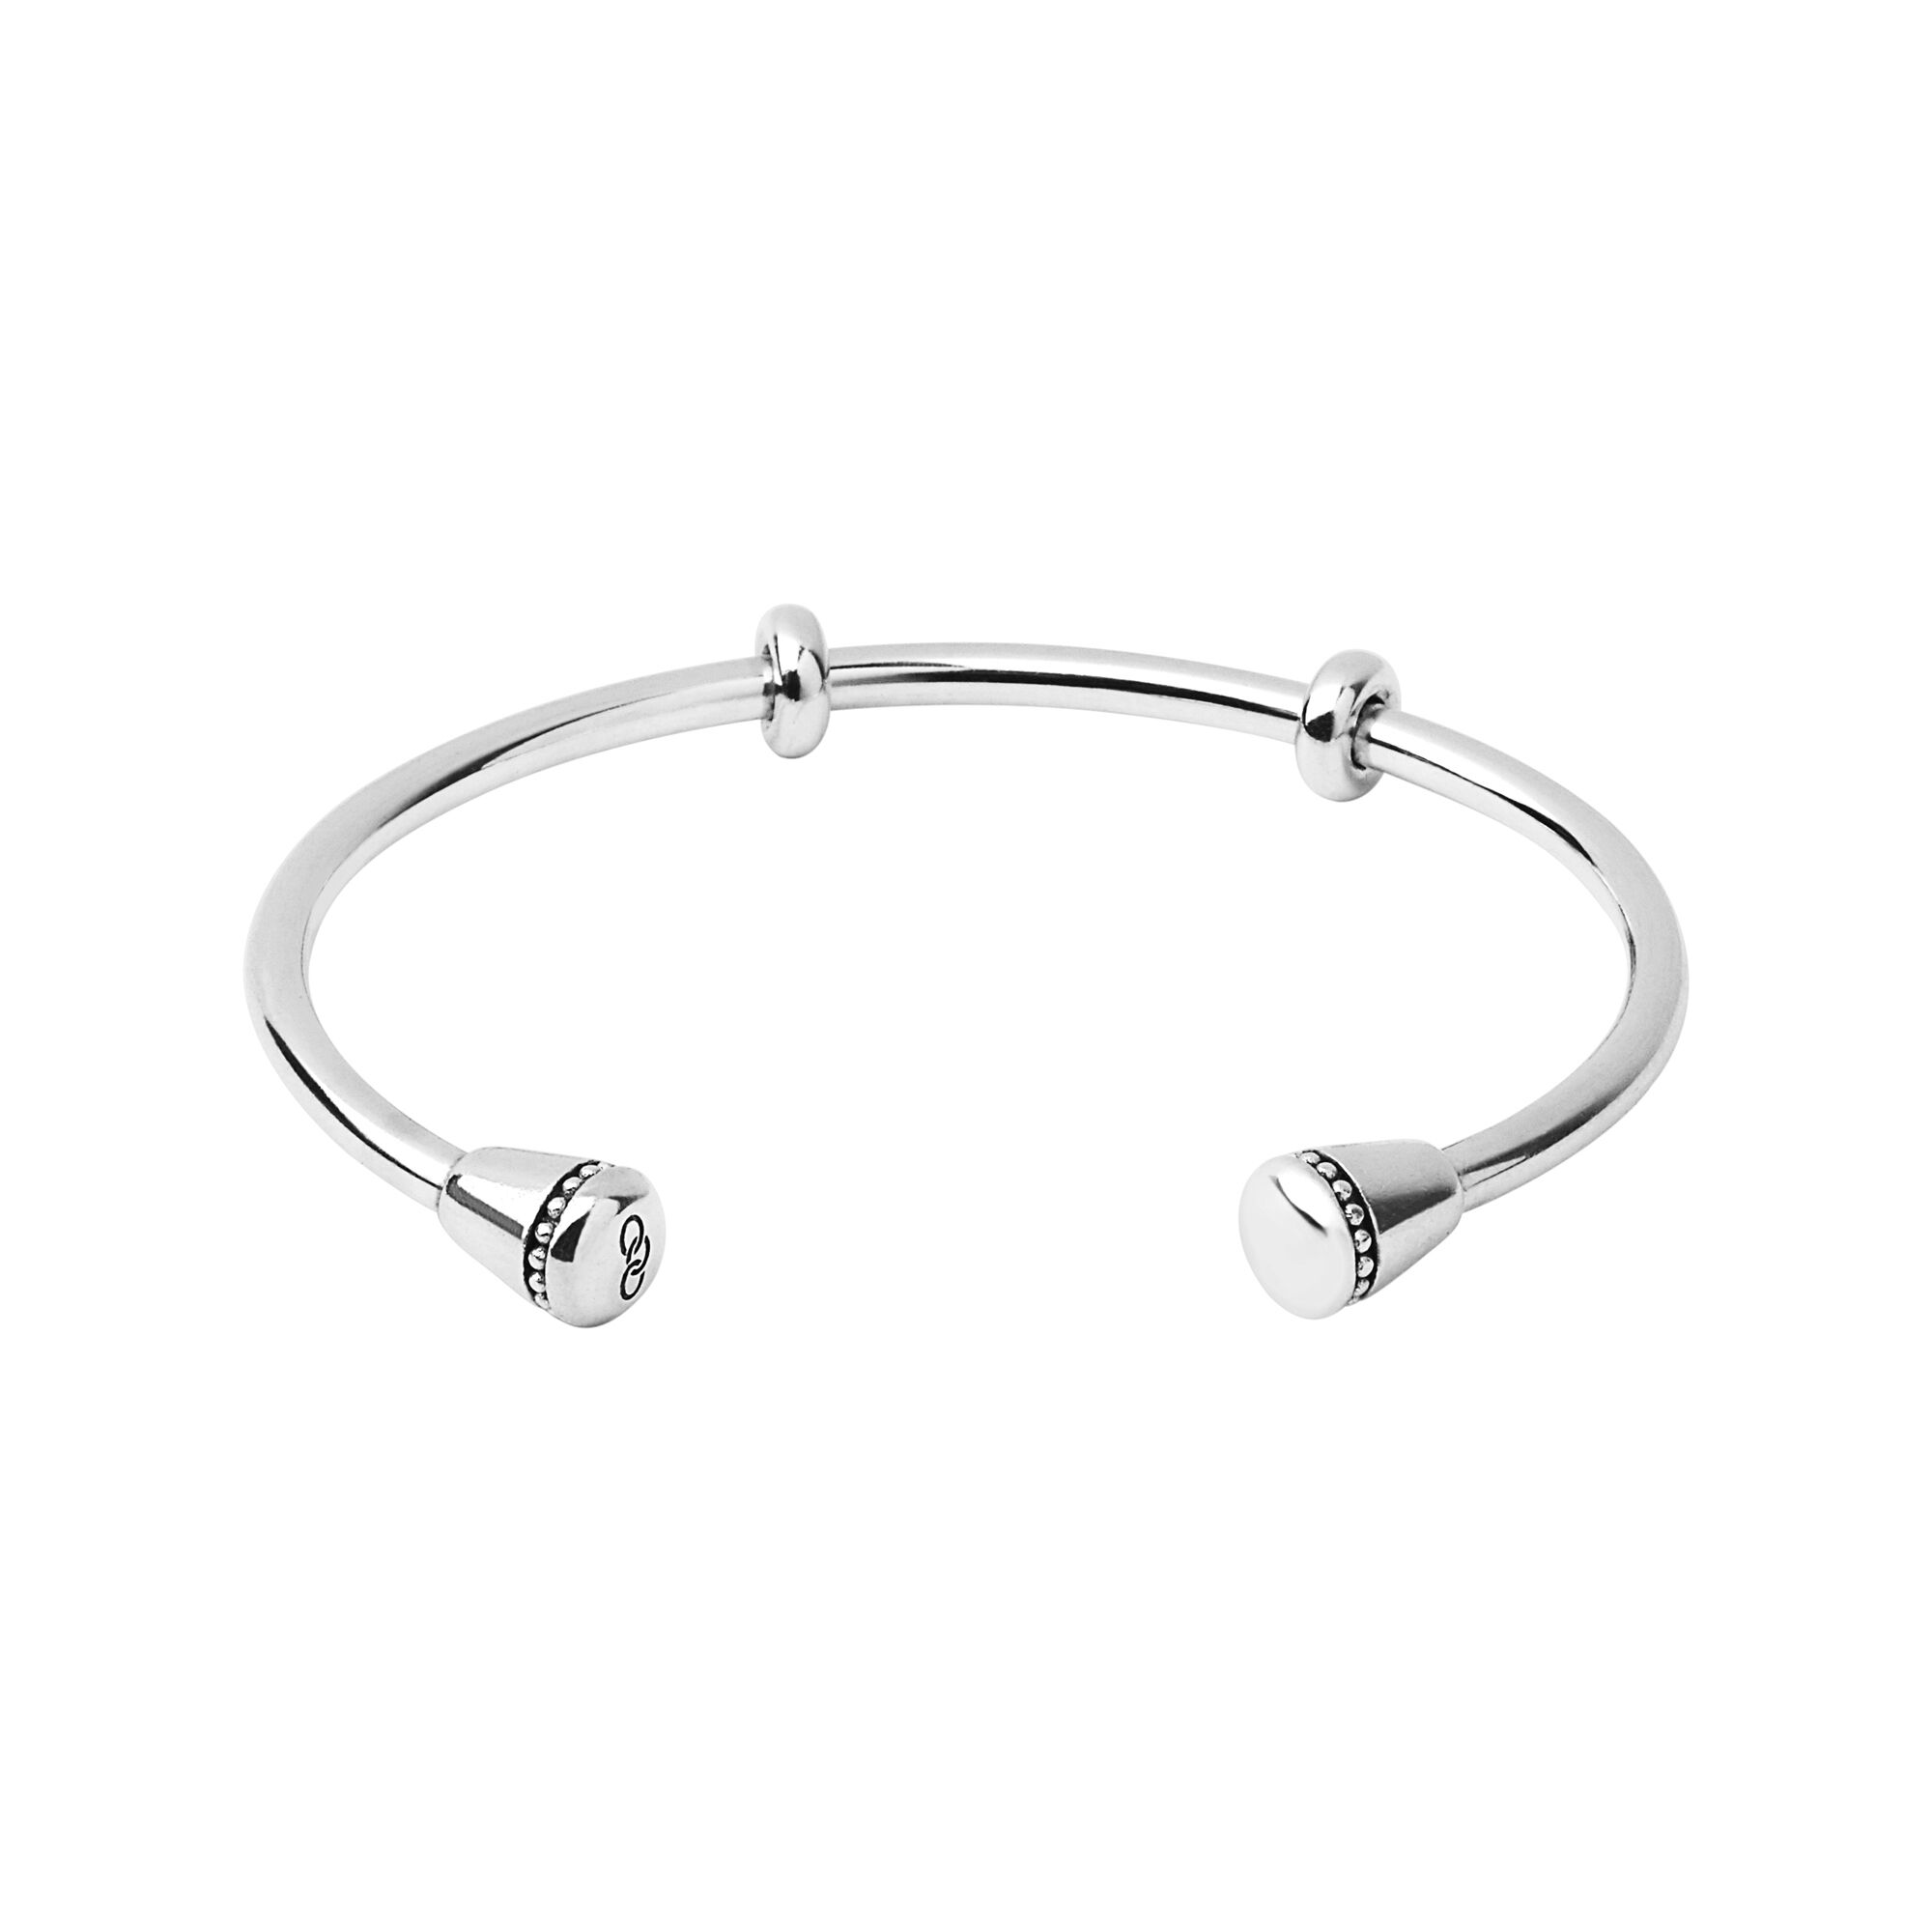 boys images sterling bracelet k pink bangle rose with charms beads zoom silver charm product filled two bangles small gold plated